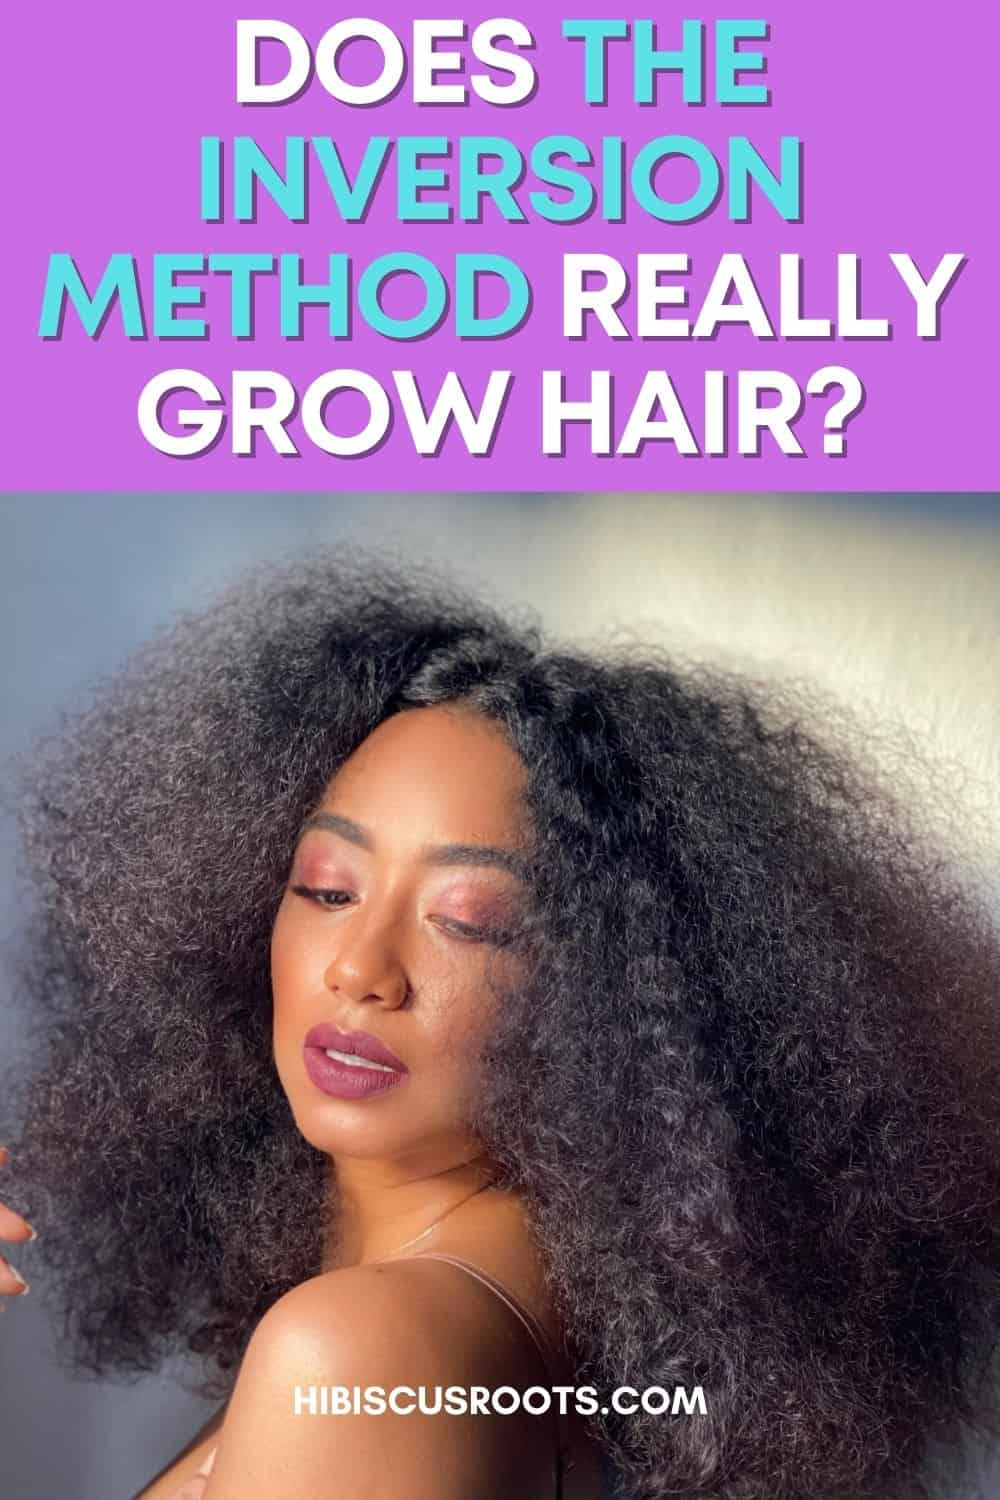 The Inversion Method for Hair Growth (Debunked!)